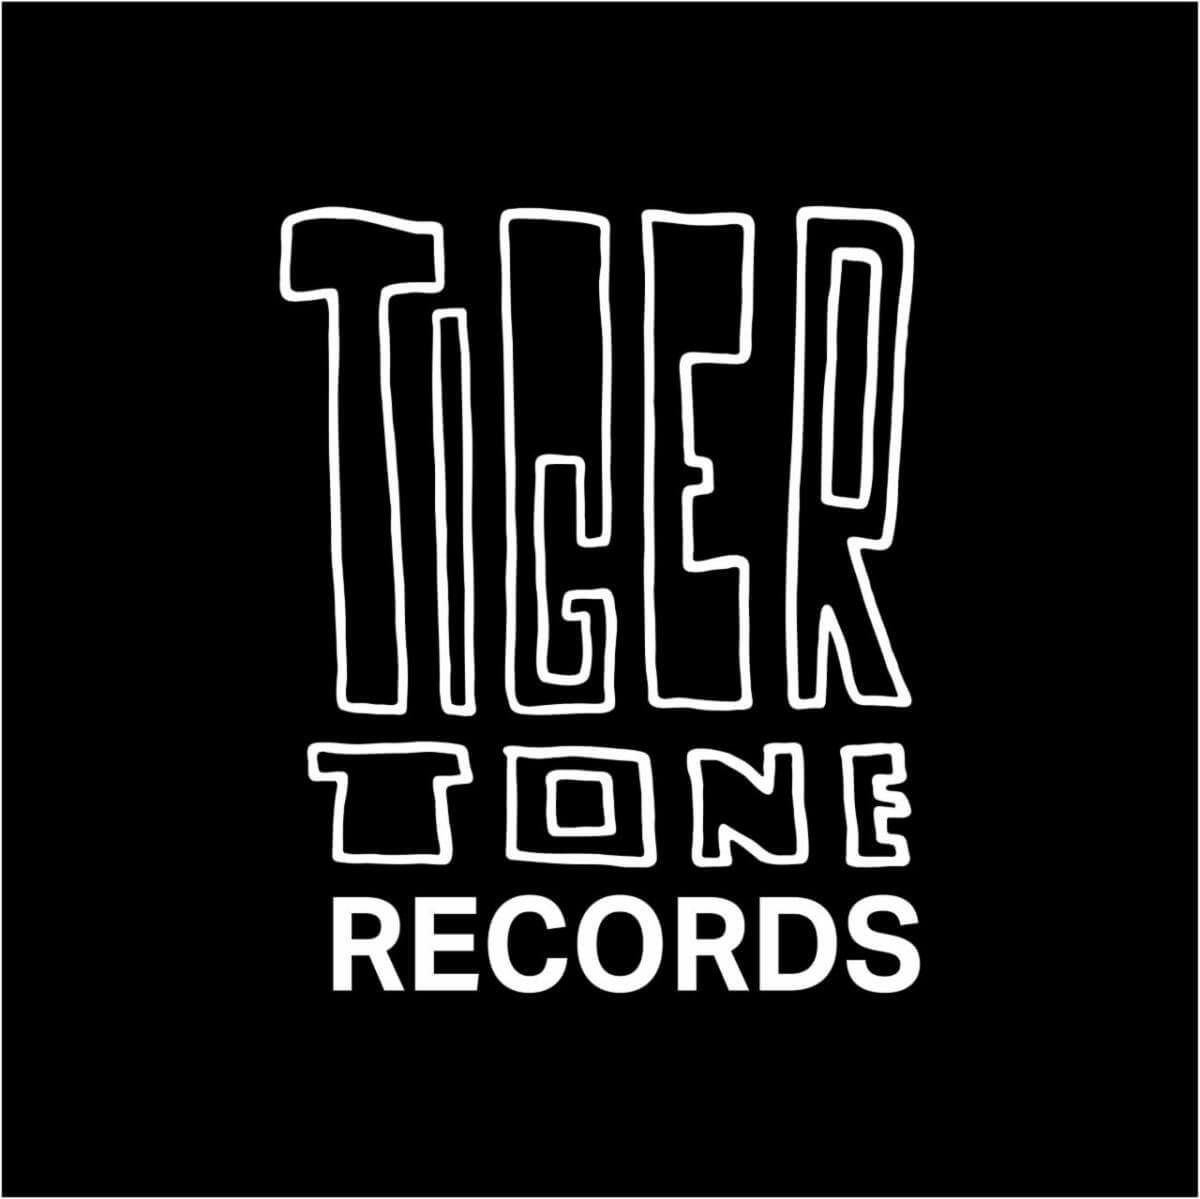 Mixer and music industry mainstay Tony Hoffer, has announced the launch of his own record label, Tiger Tone Records